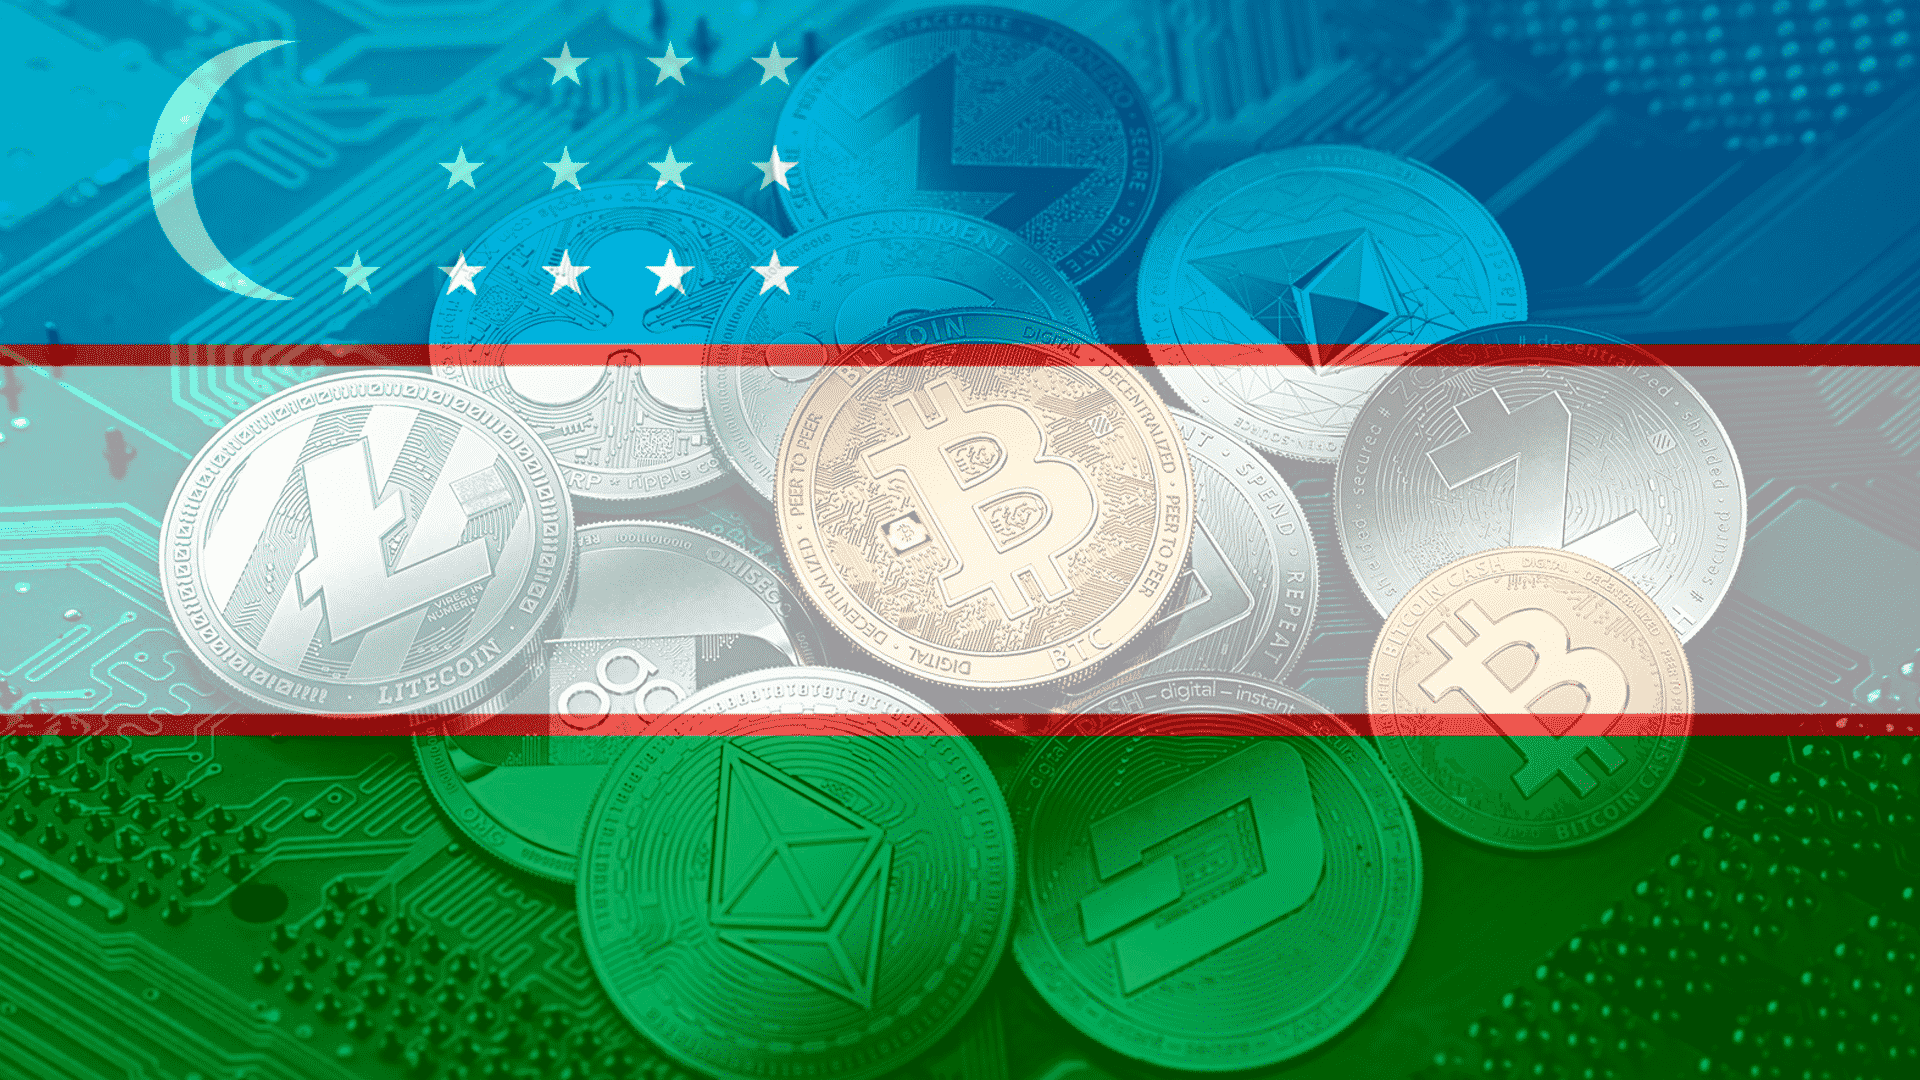 Uzbekistan Says 'Yes' to Cryptocurrency